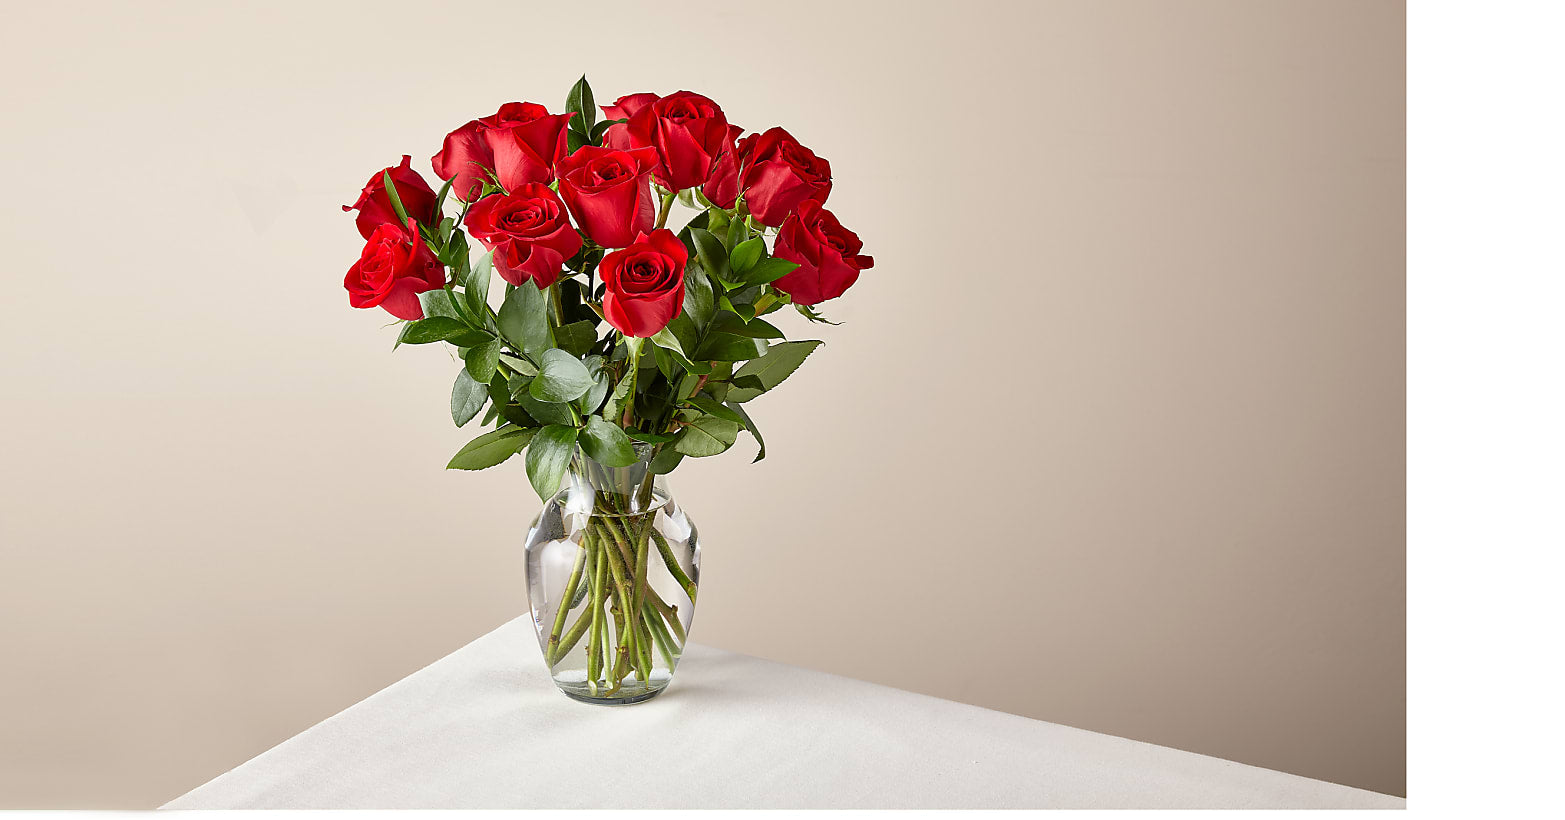 12 Red Roses with Vase - Image 1 Of 2